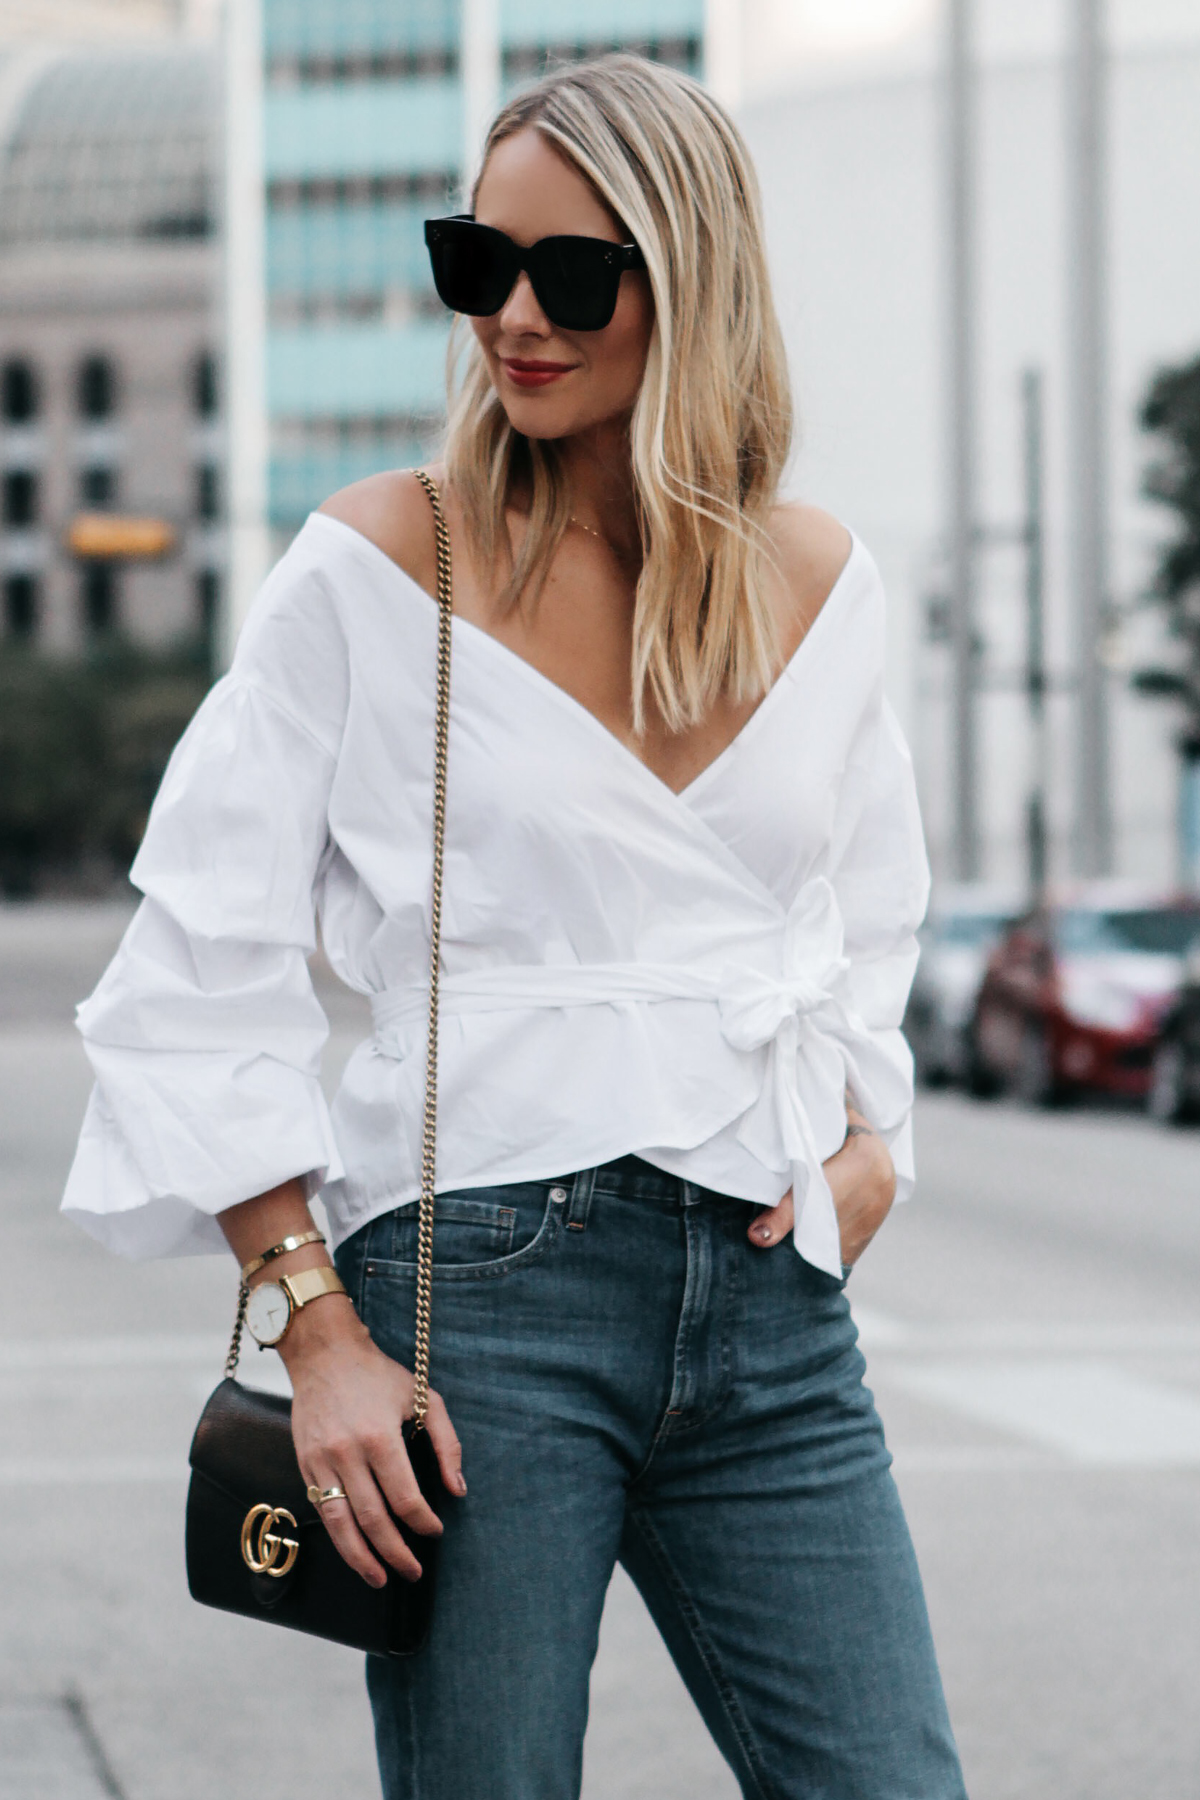 Blonde Woman Wearing Club Monaco White Ruffle Sleeve Wrap Top Gucci Marmont Handbag Everlane Denim Fashion Jackson Dallas Blogger Fashion Blogger Street Style